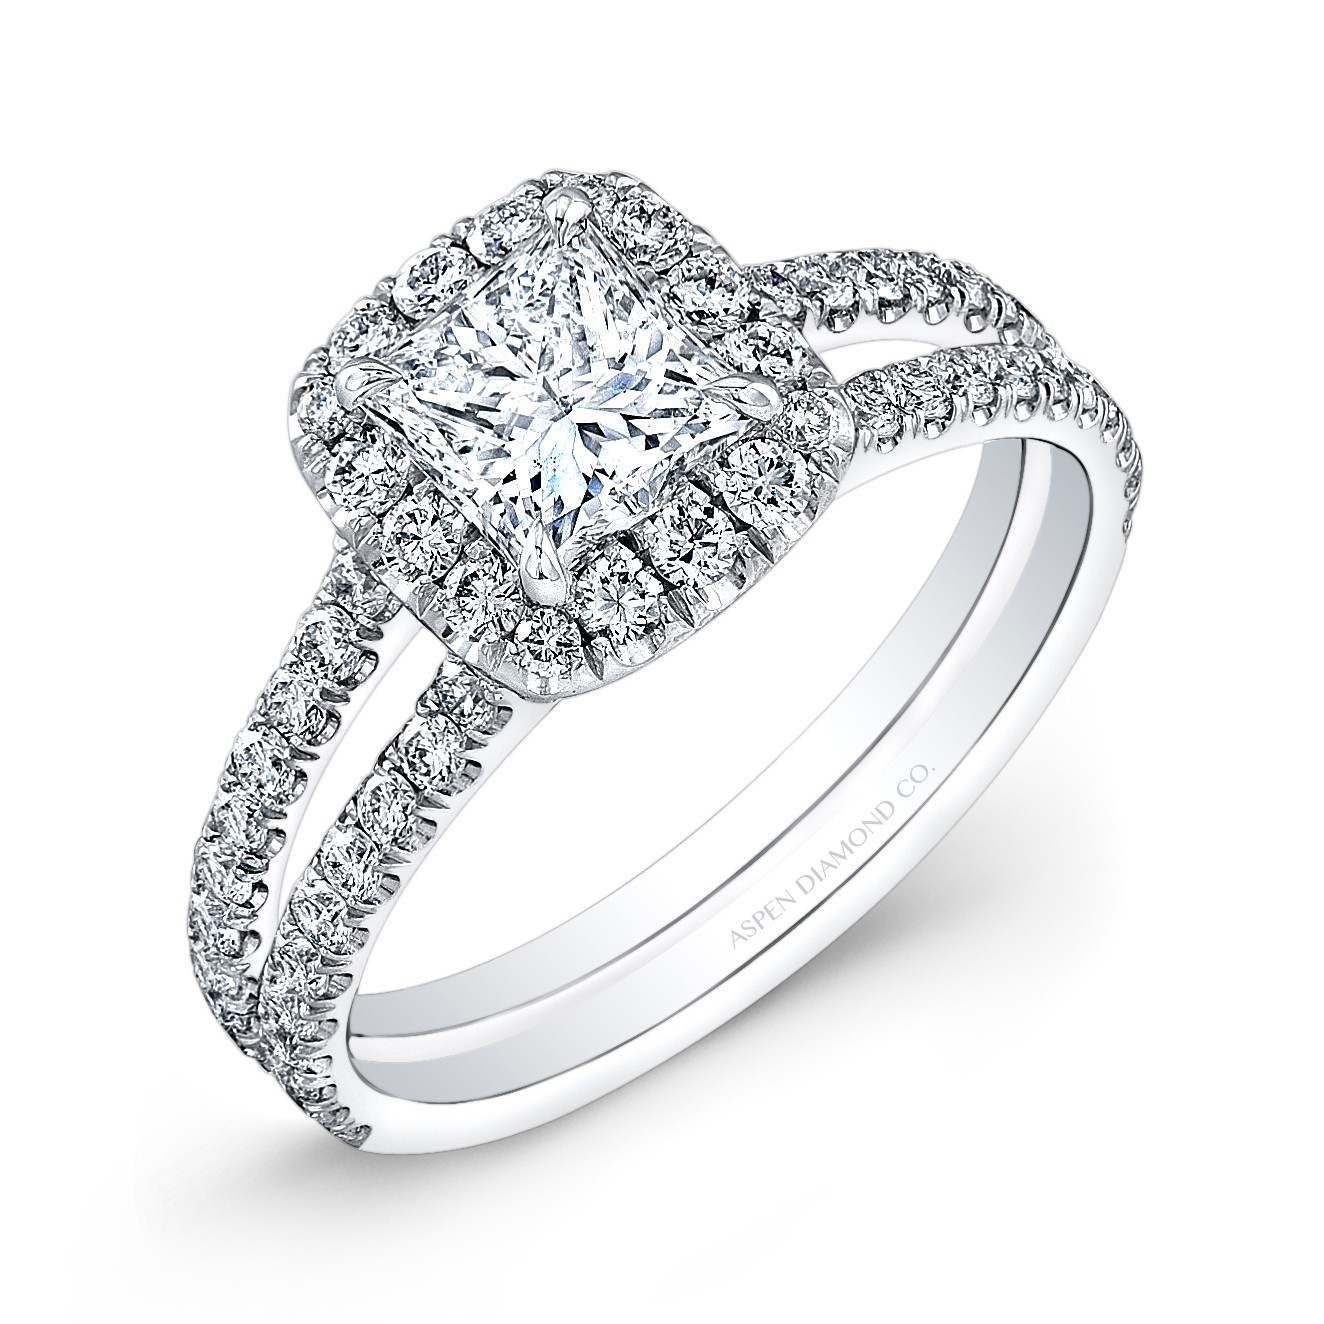 Princess Cut Diamond Halo Engagement Ring in 18K White Gold